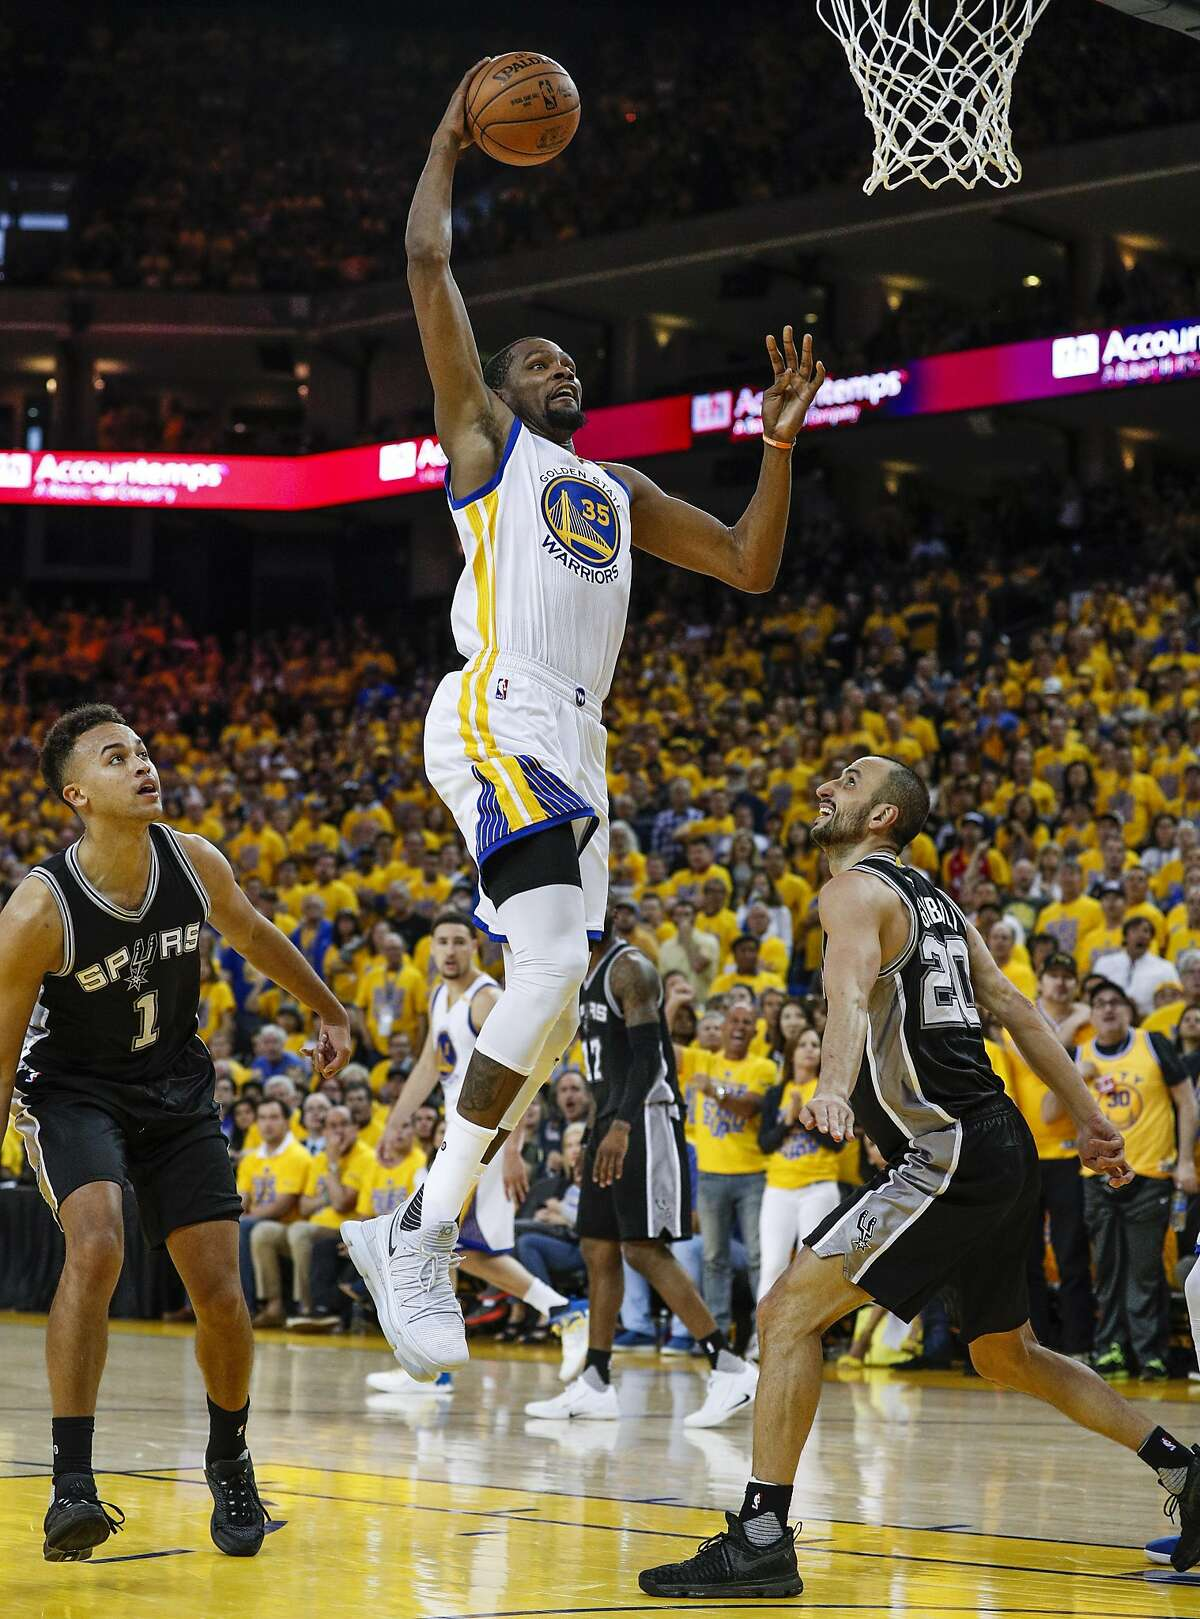 Golden State Warriors' Kevin Durant goes up for a dunk in the fourth quarter during Game 1 of the 2017 NBA Playoffs Western Conference Finals at Oracle Arena on Sunday, May 14, 2017 in Oakland, Calif.